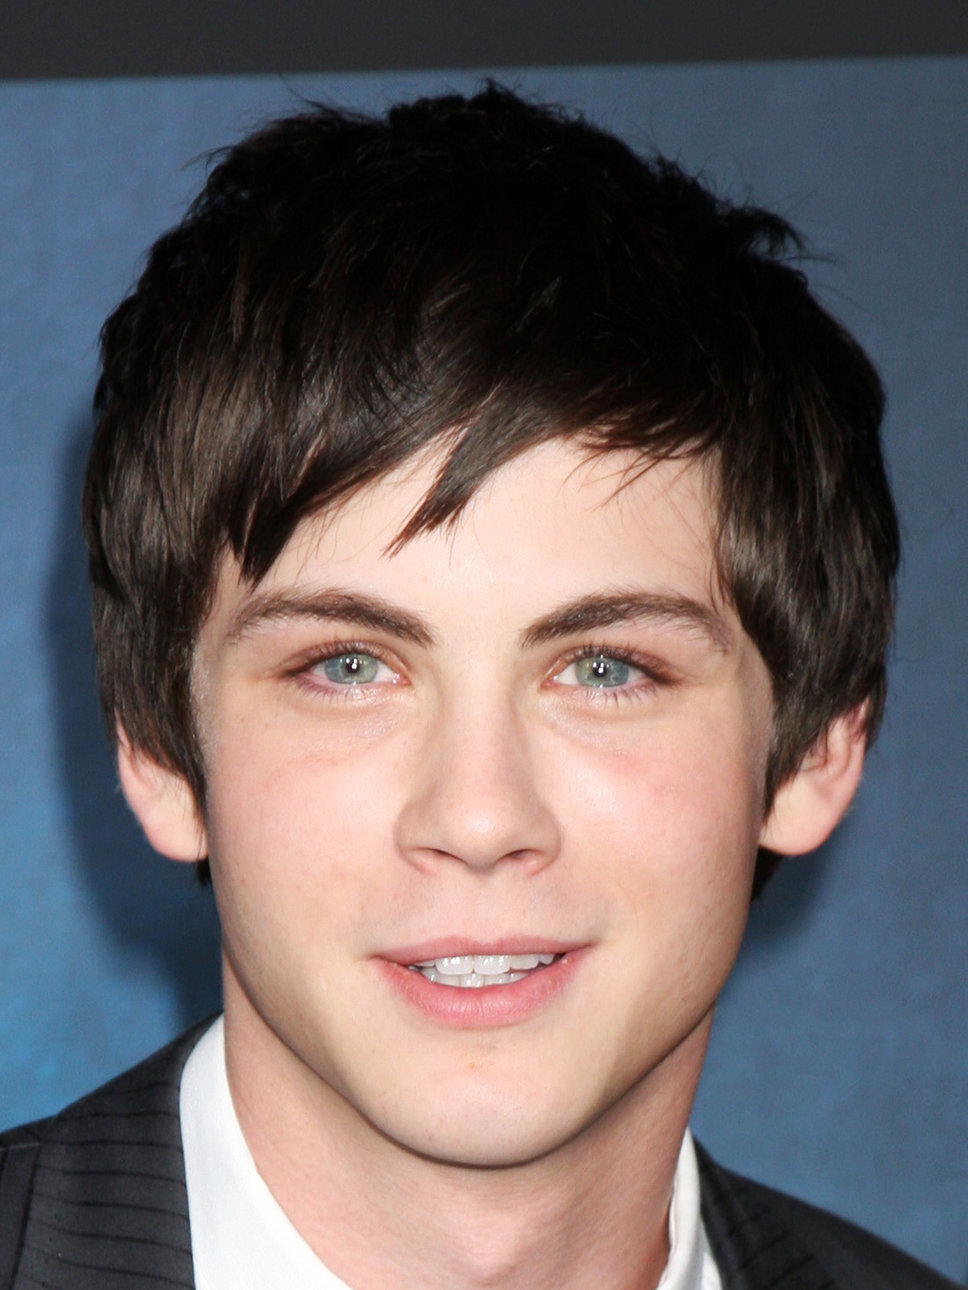 Sensational Cool Hairstyles For Teenage Guys You Might Try Latest Hair Short Hairstyles Gunalazisus